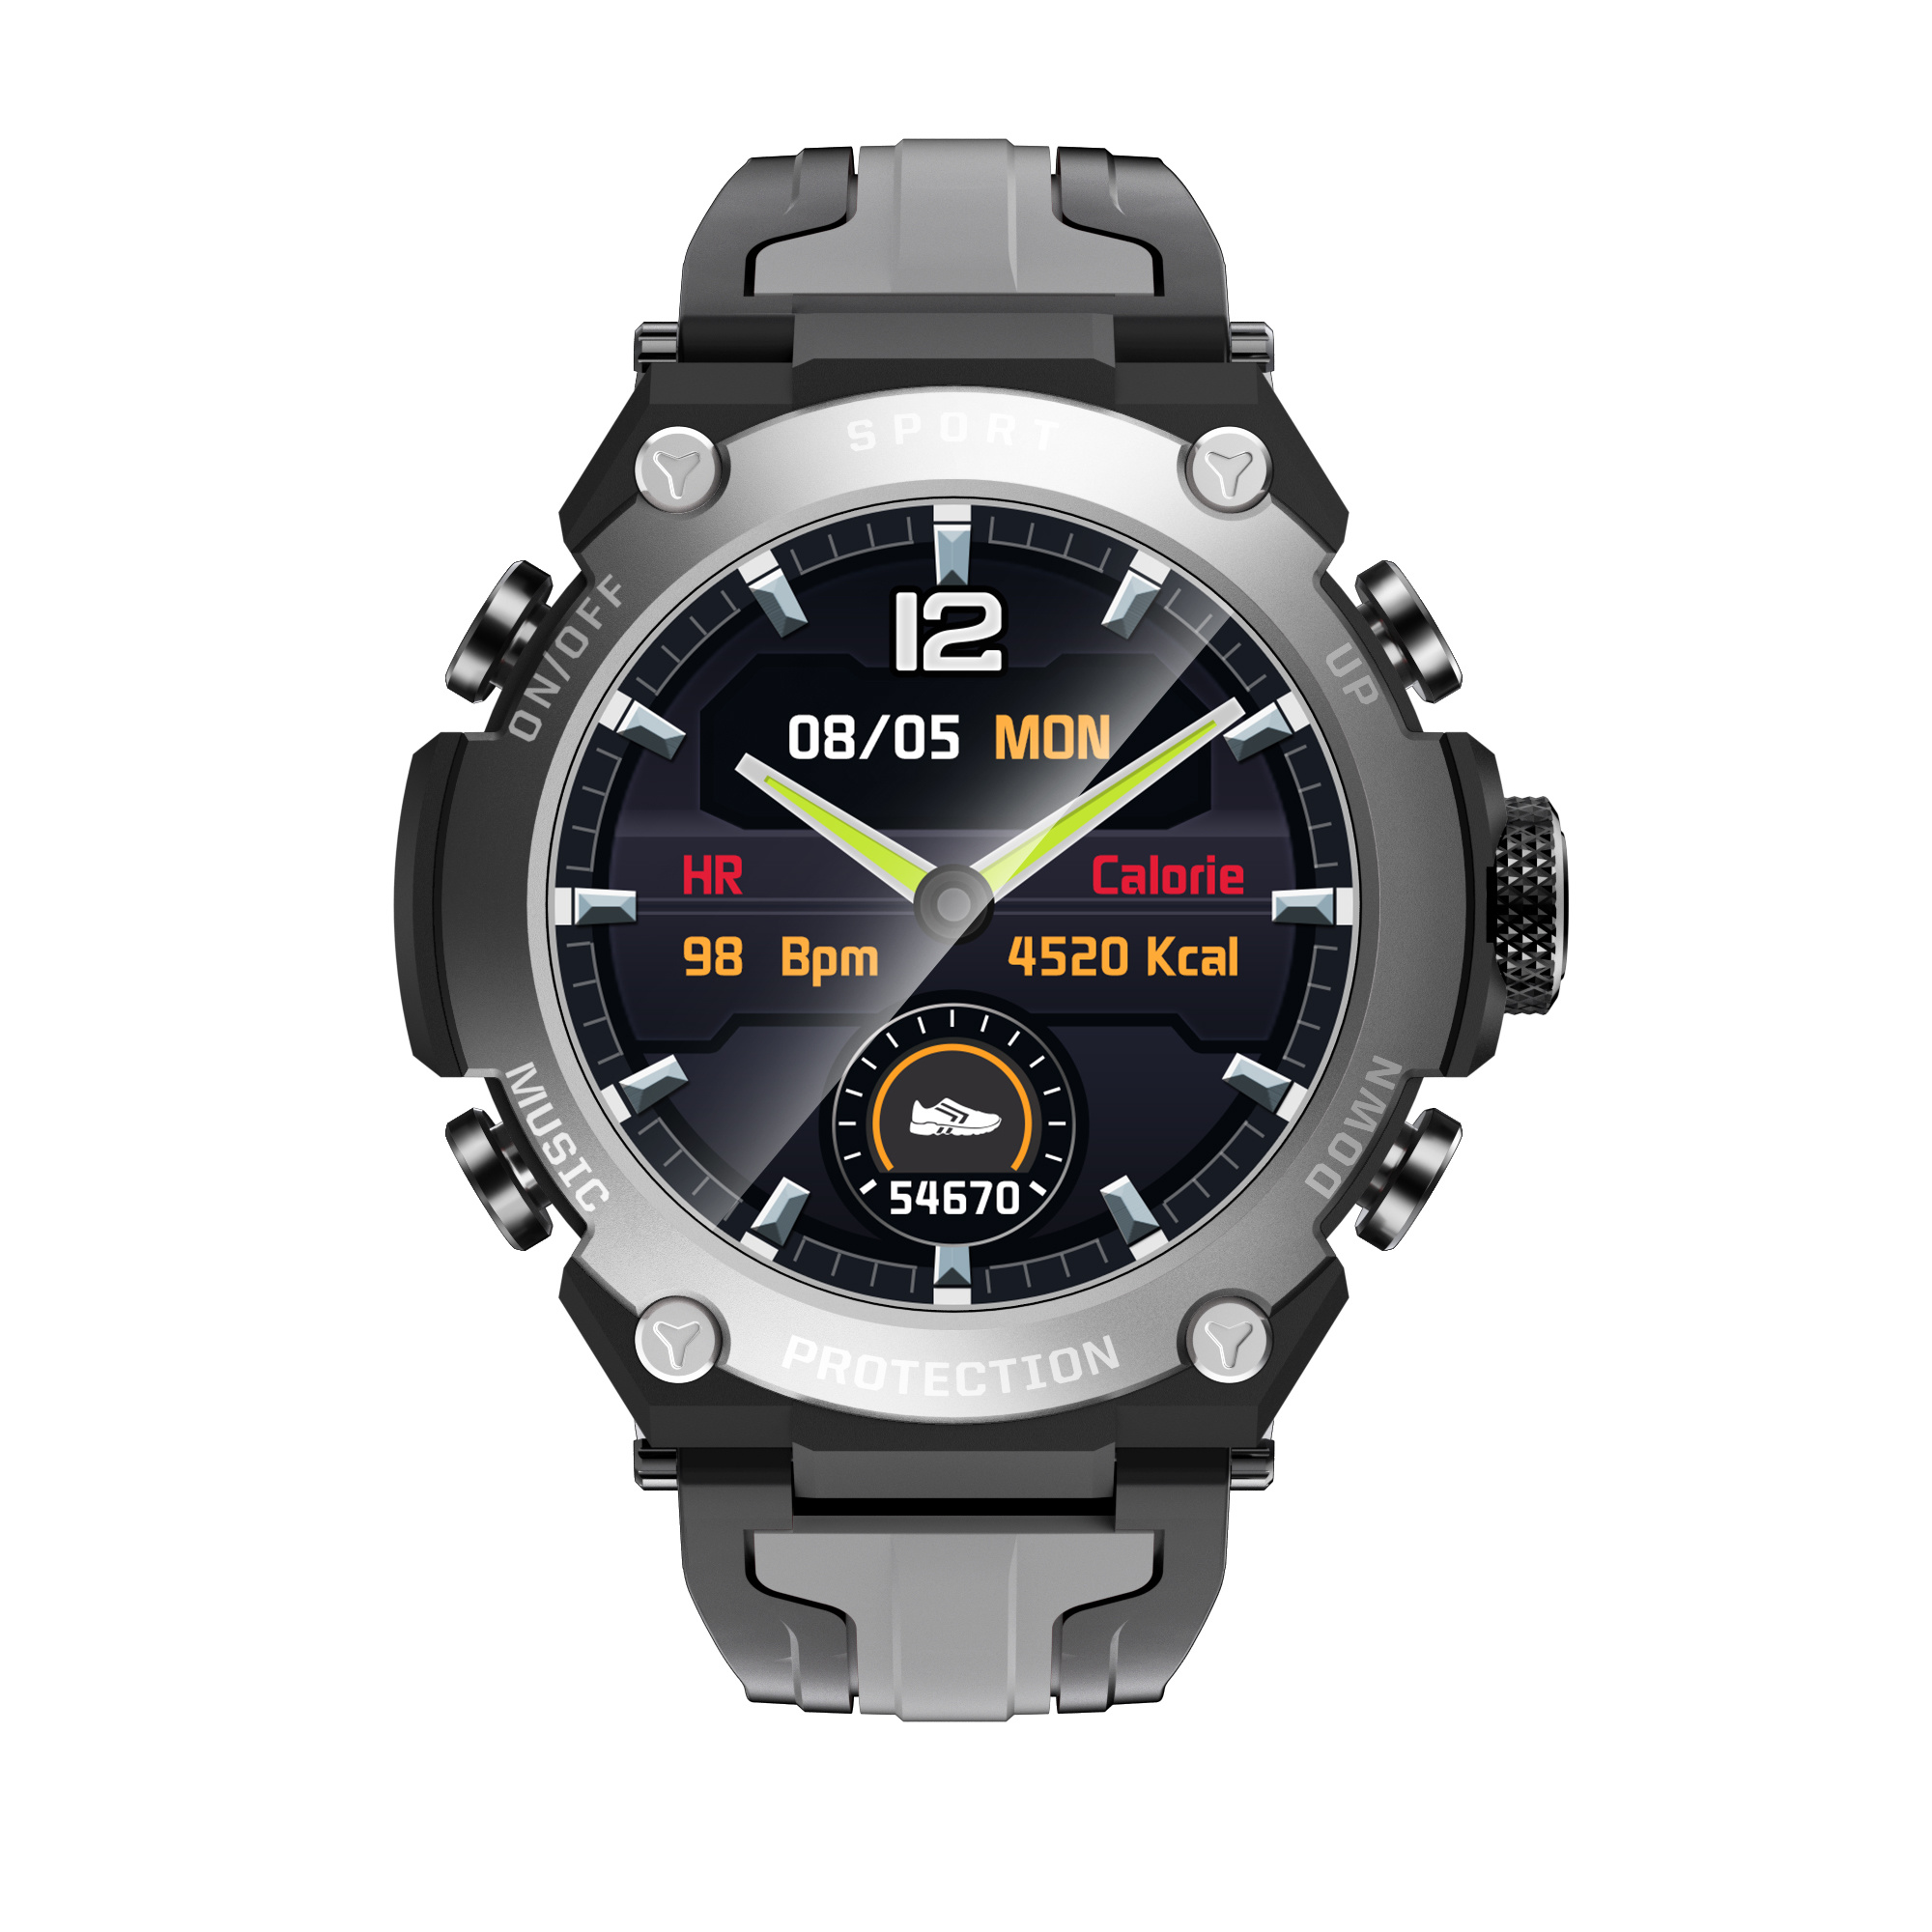 Outdoor sports smart watches, multiple sports, weather, health monitoring, heart rate monitoring, remote camera music control